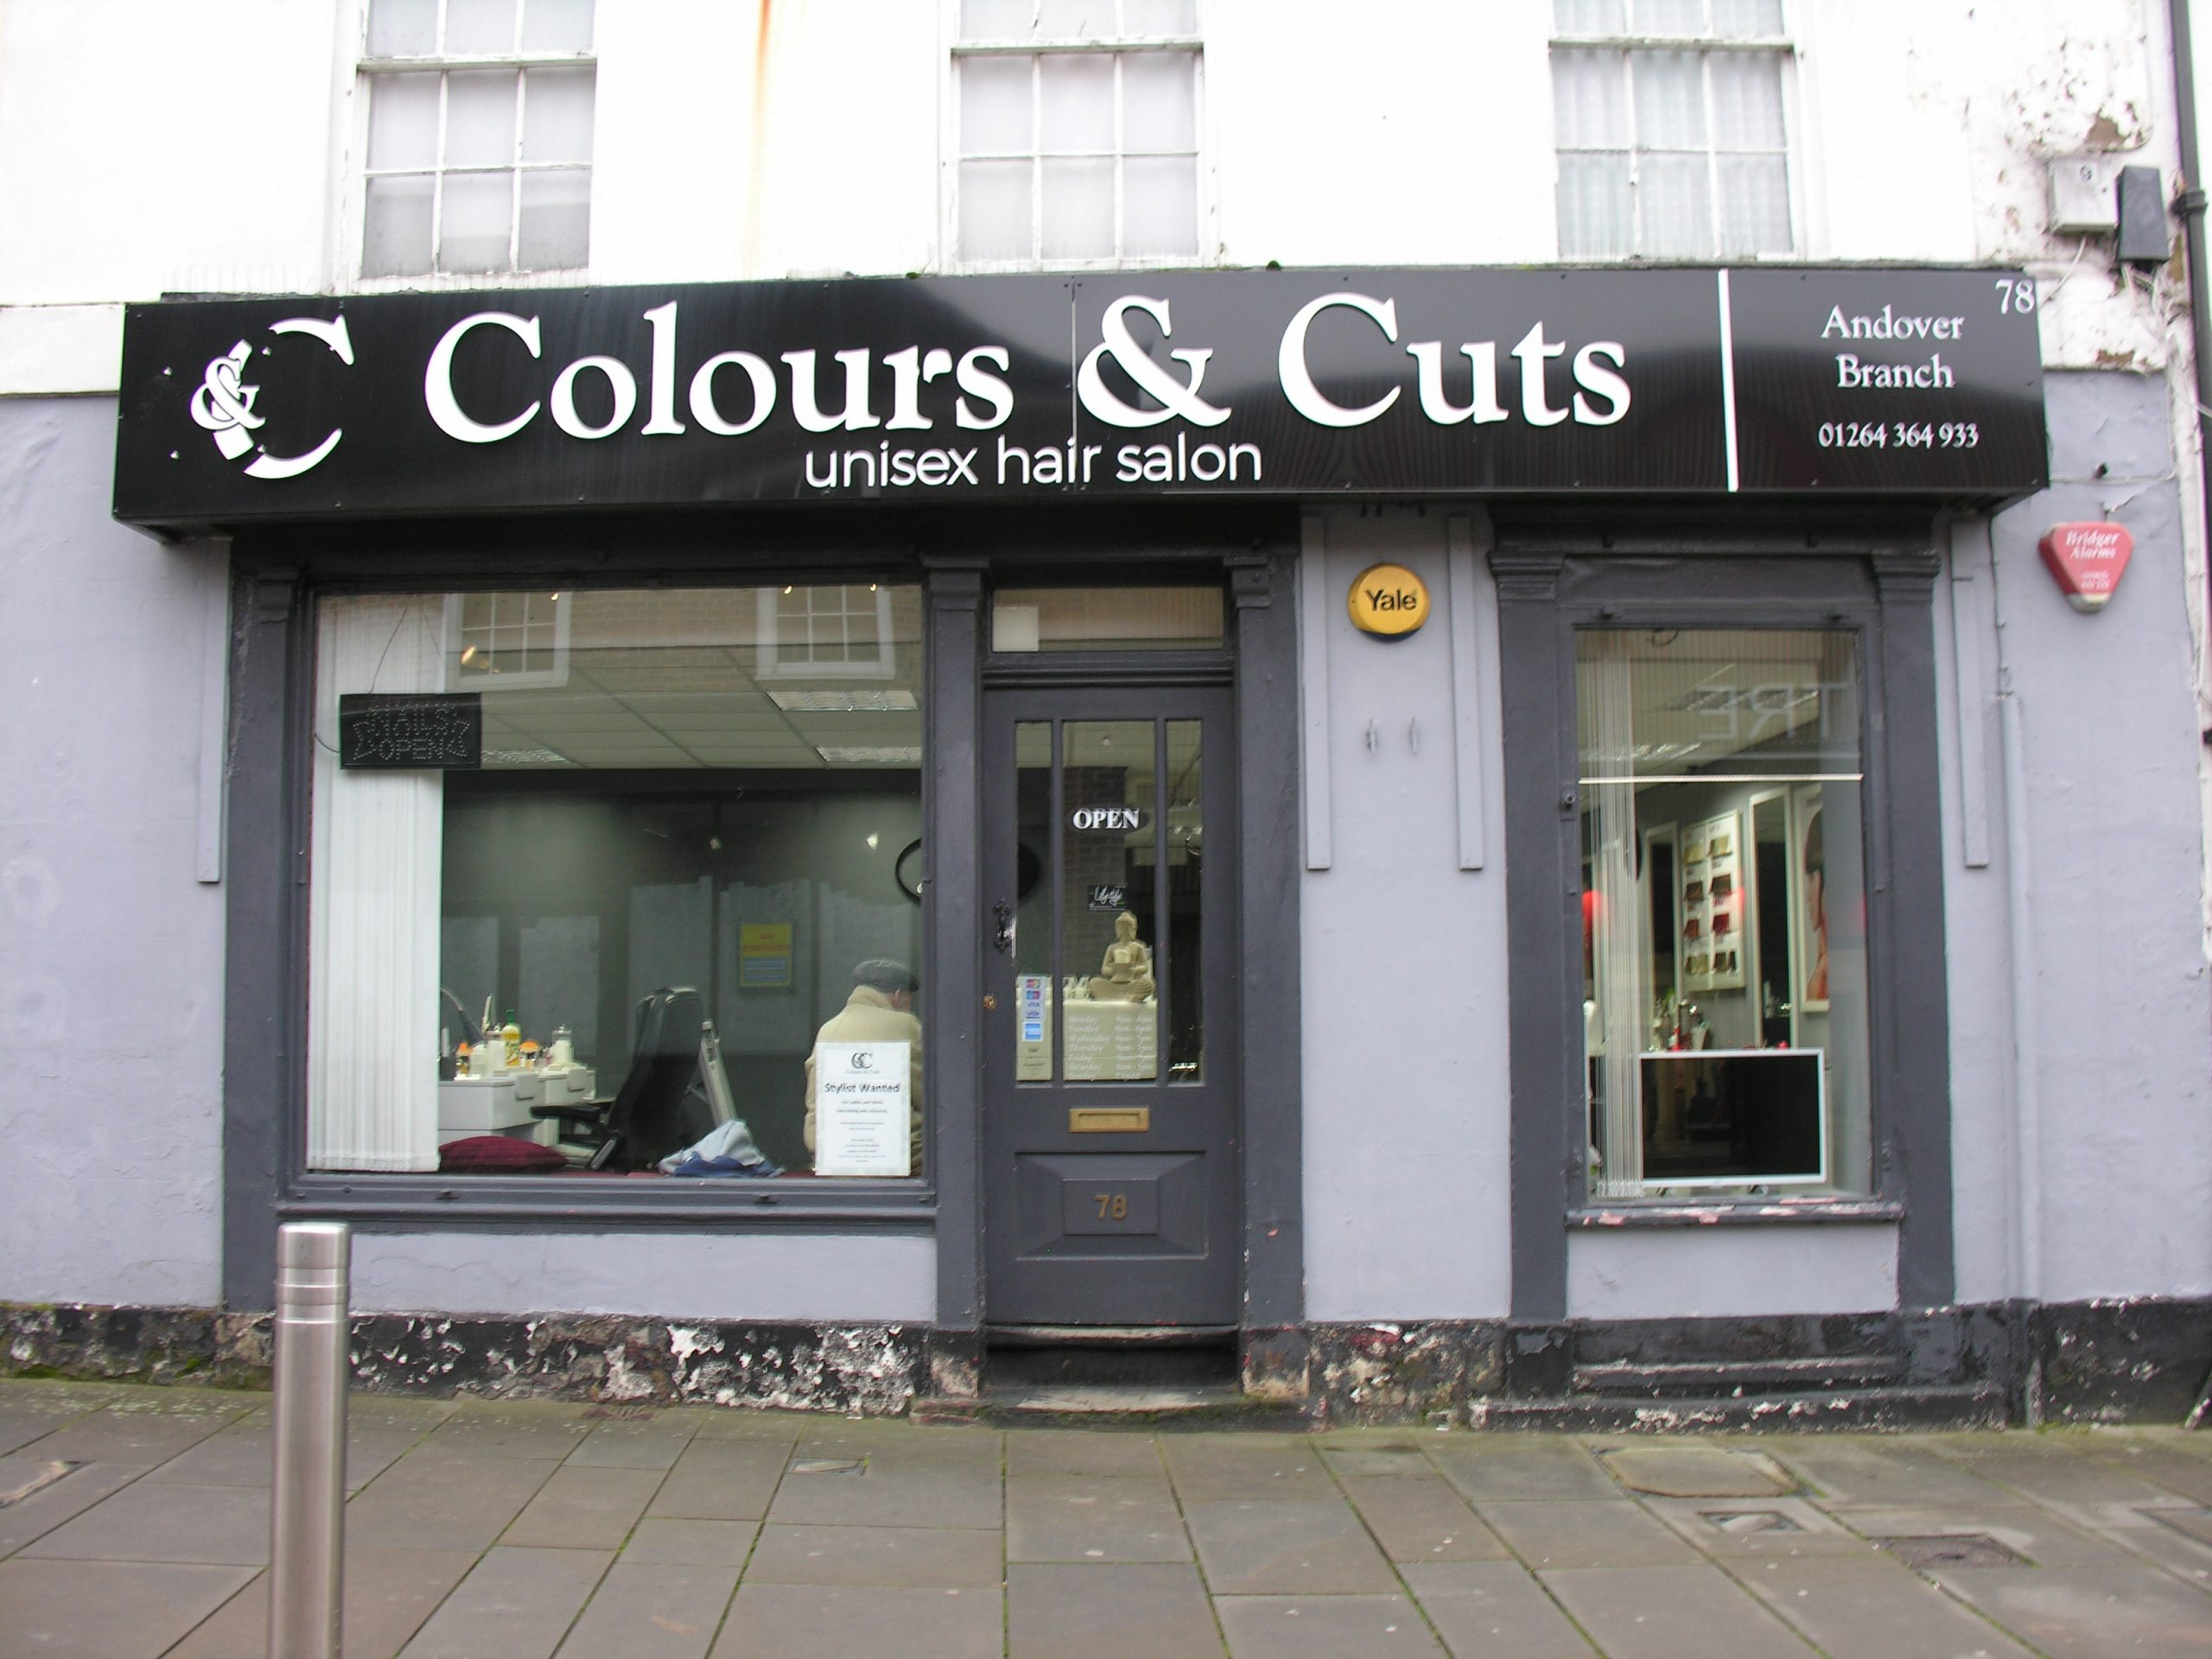 Colours & Cuts